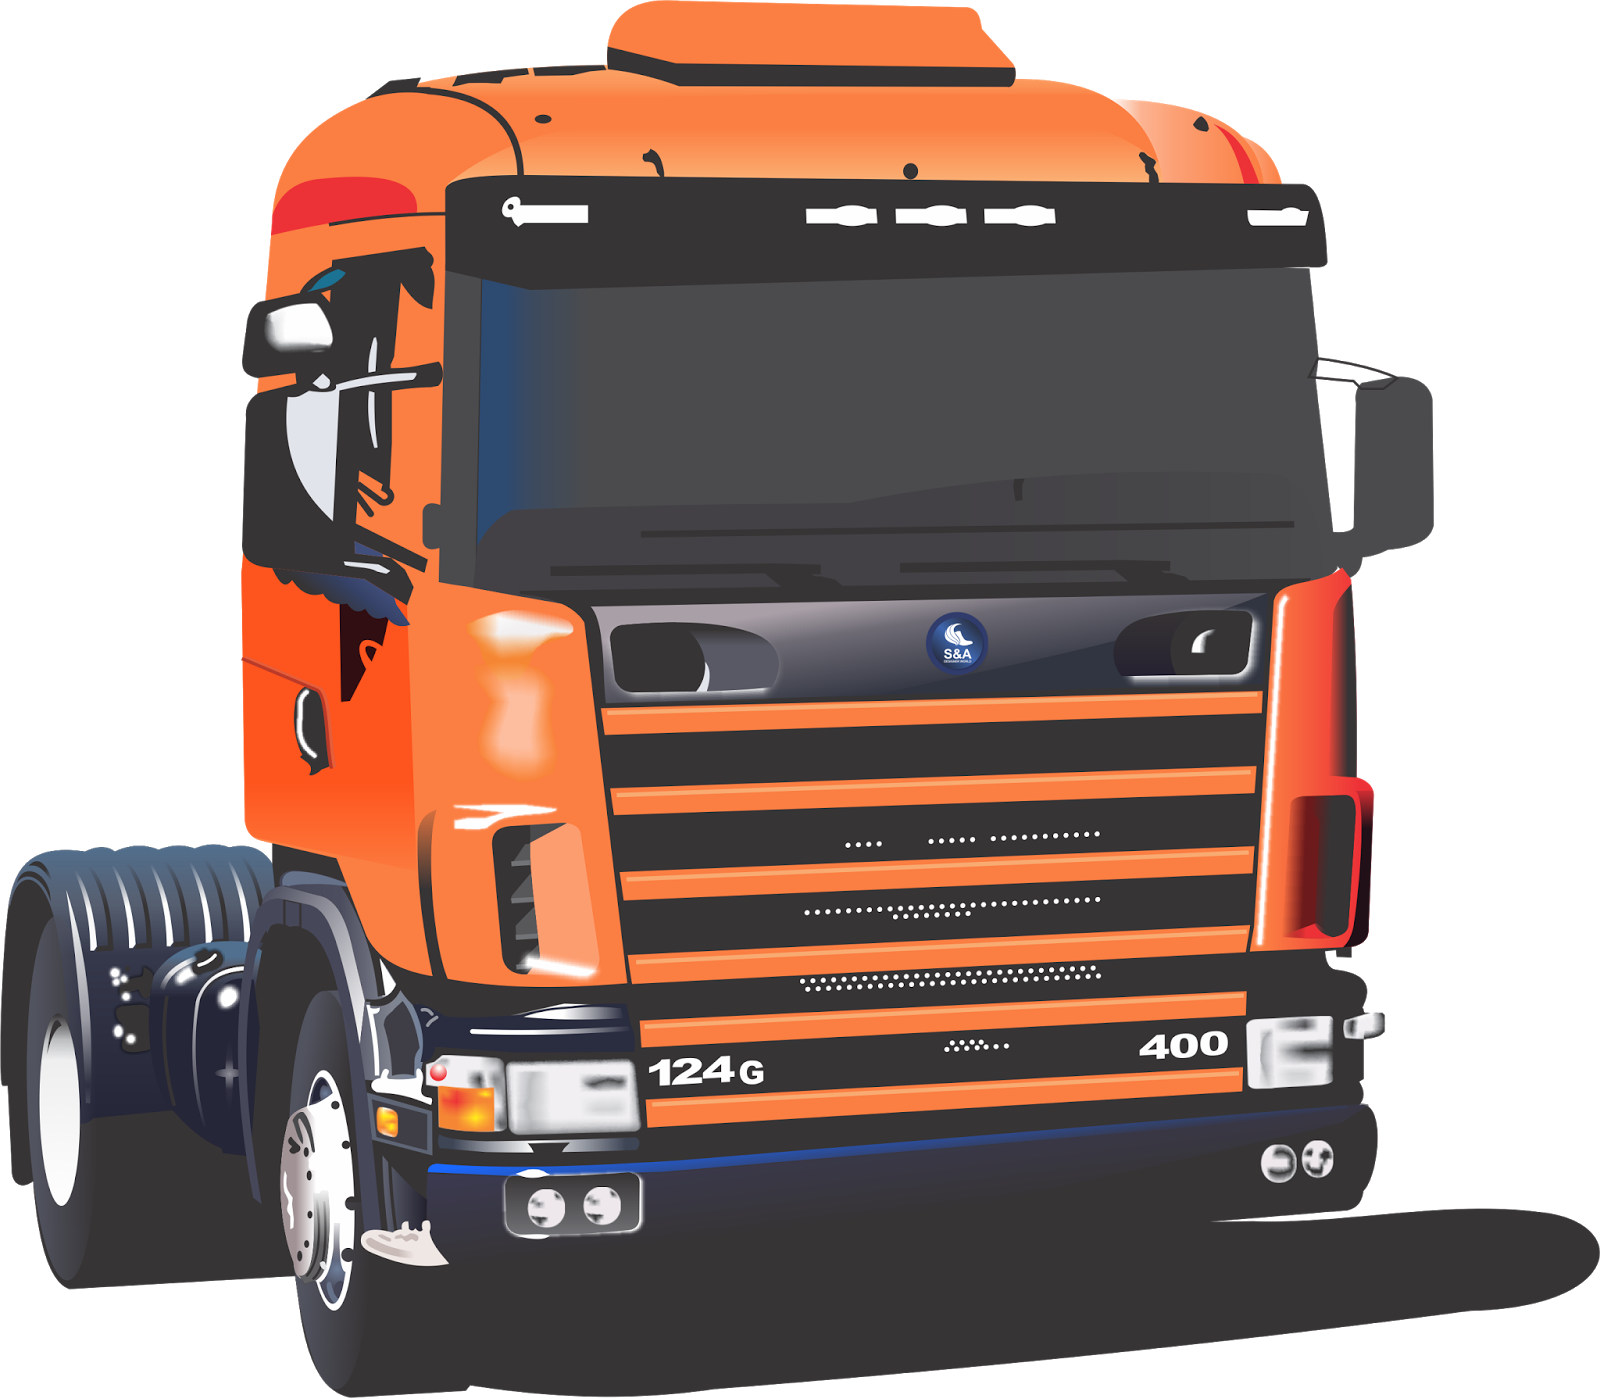 Free Vector About Car Amp Truck Vector Graphics